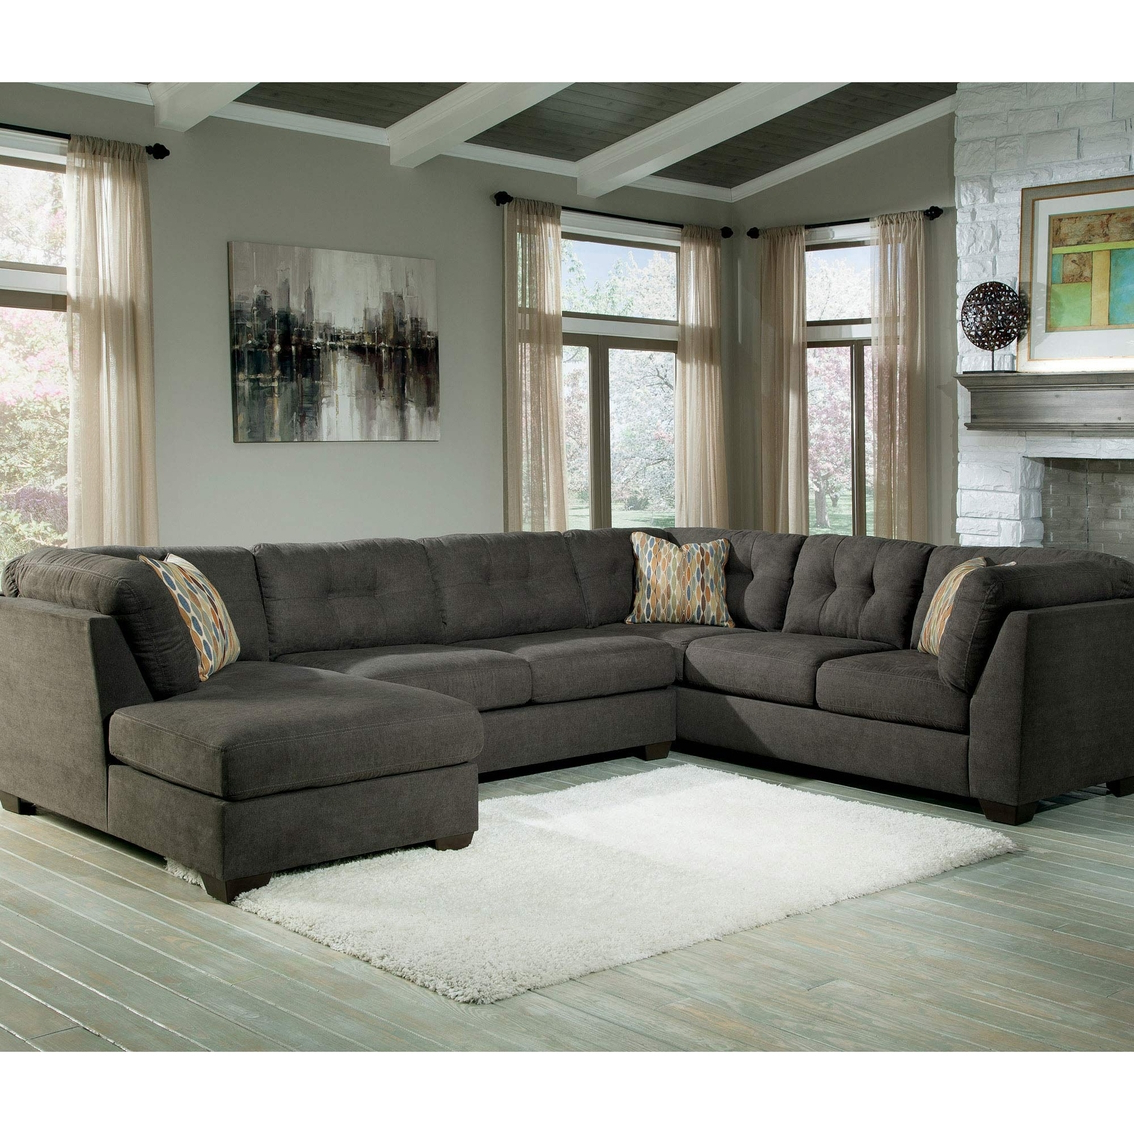 Sofas Intended For Norfolk Grey 3 Piece Sectionals With Raf Chaise (View 16 of 20)